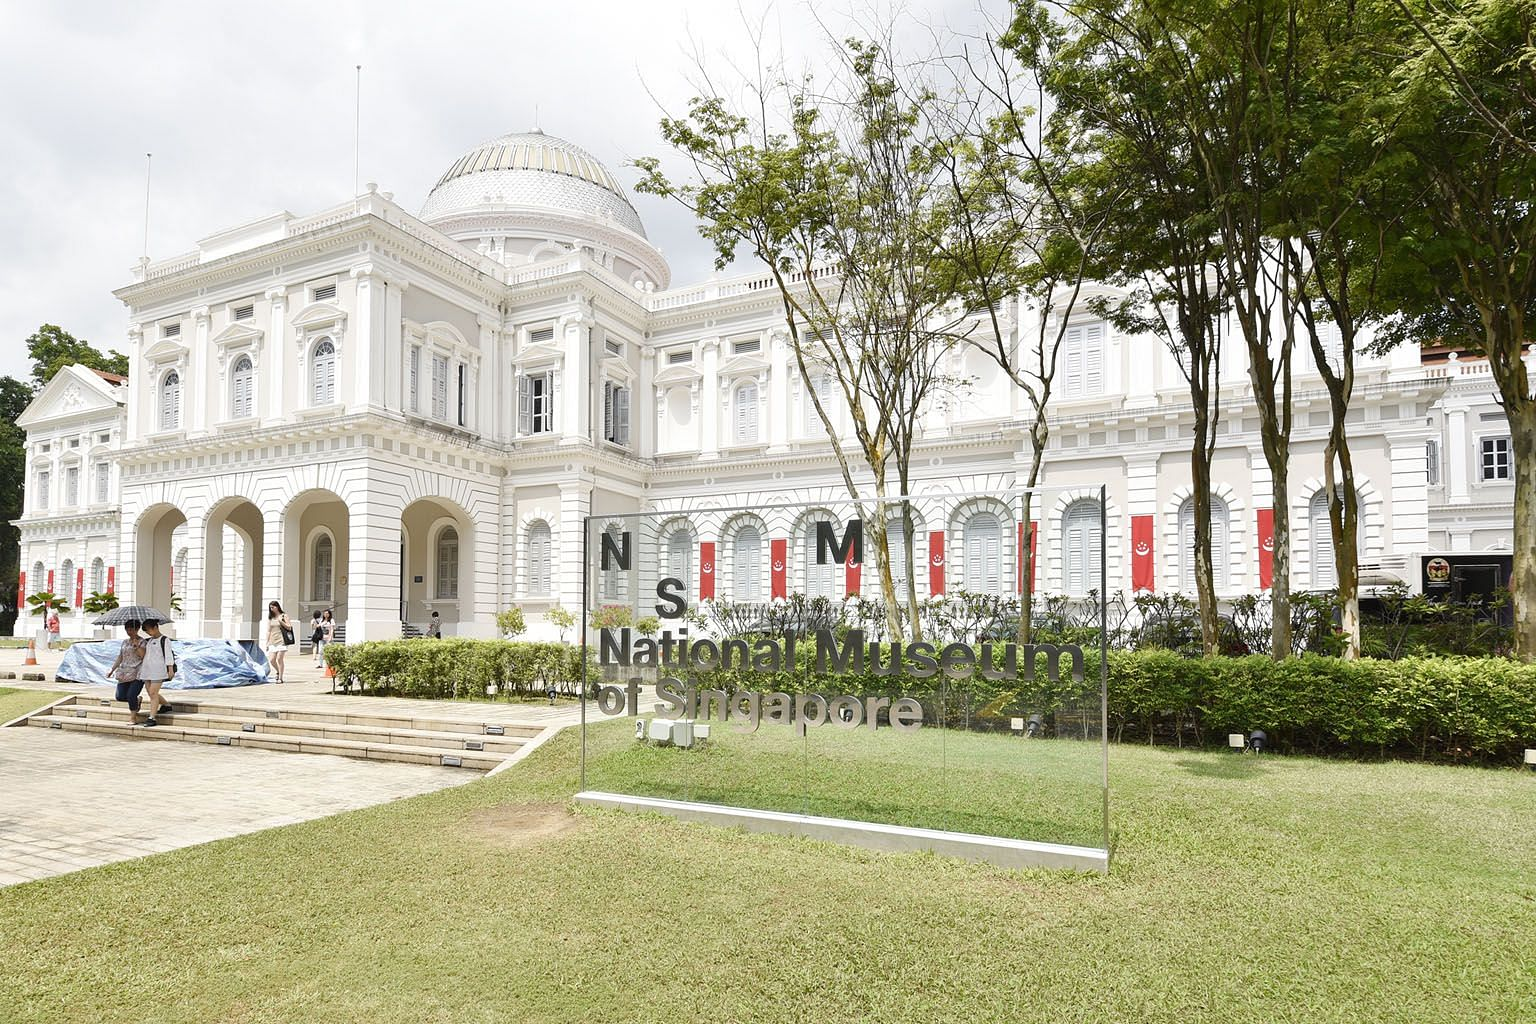 Today, the National Museum of Singapore follows in the spirit of the researchers who safeguarded it during World War II. At the time, the British and Japanese researchers put their differences aside because they realised the importance of knowledge t